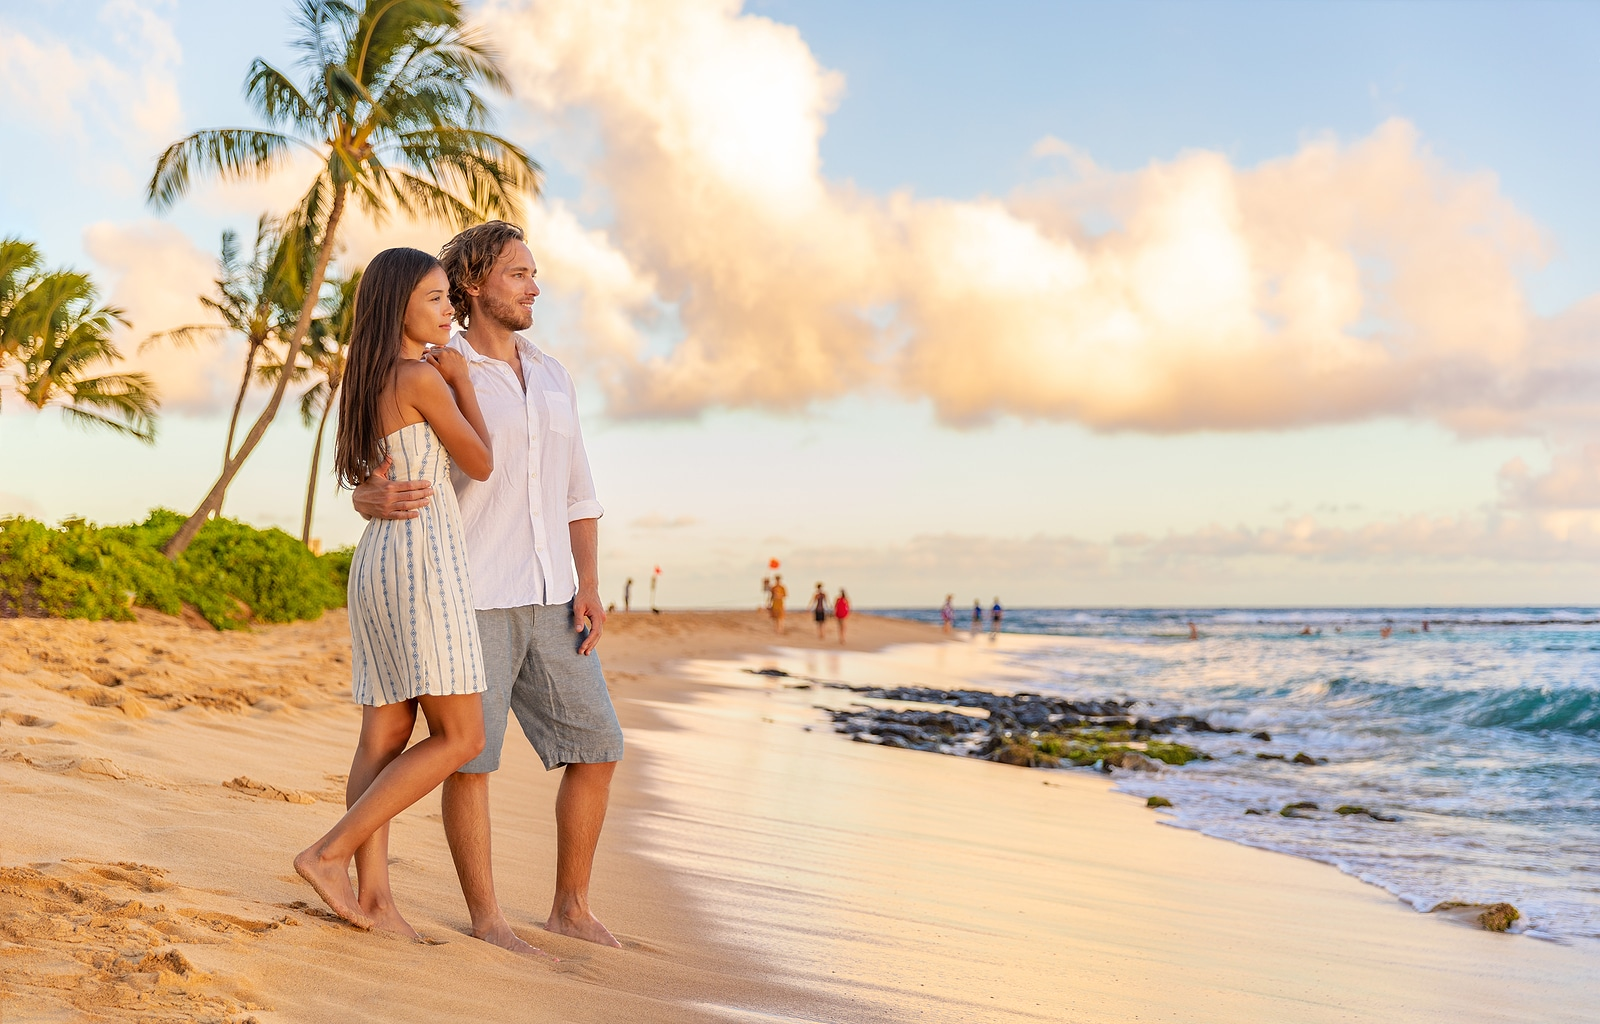 Top Vacation Destination for 2021 Hawaii